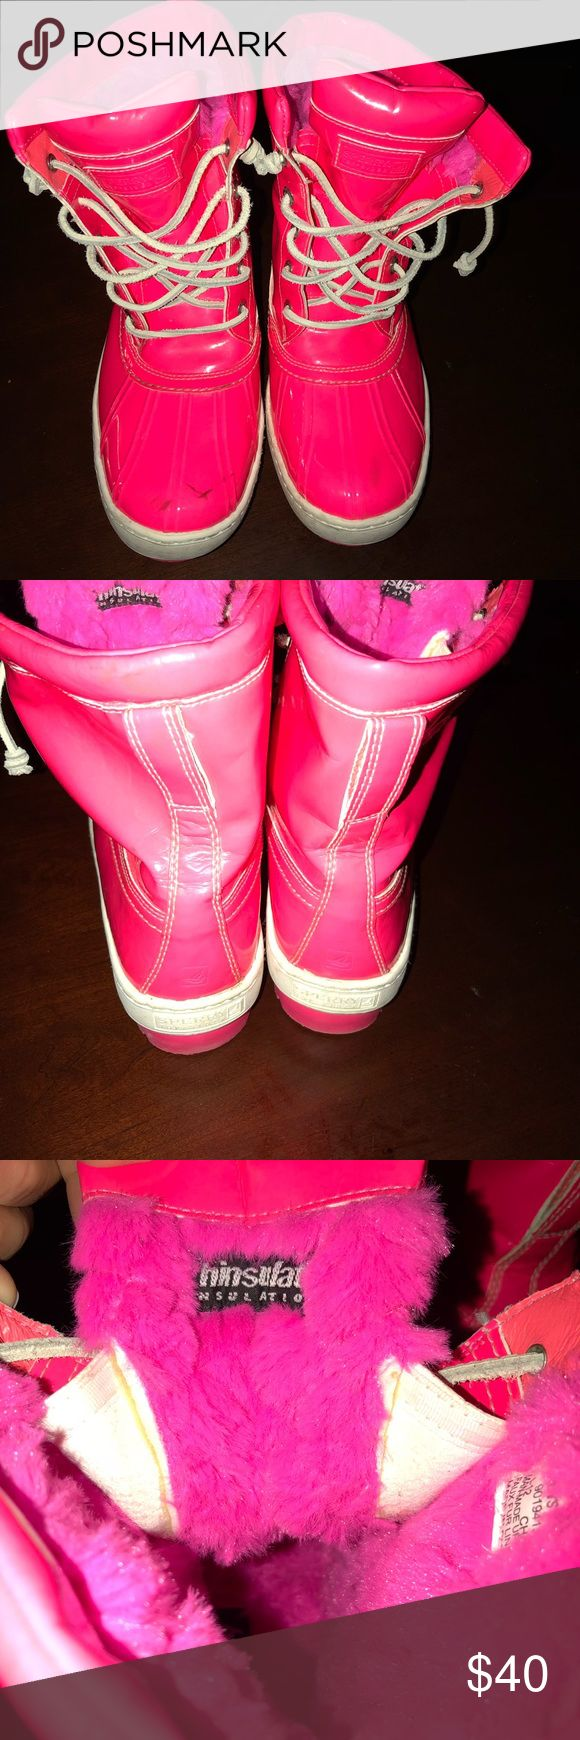 Sperry hot pink boots - size 9 Fun Hot Pink Sperry Boots worn twice - scuff on inside and toe of right boot. sperry Shoes Winter & Rain Boots